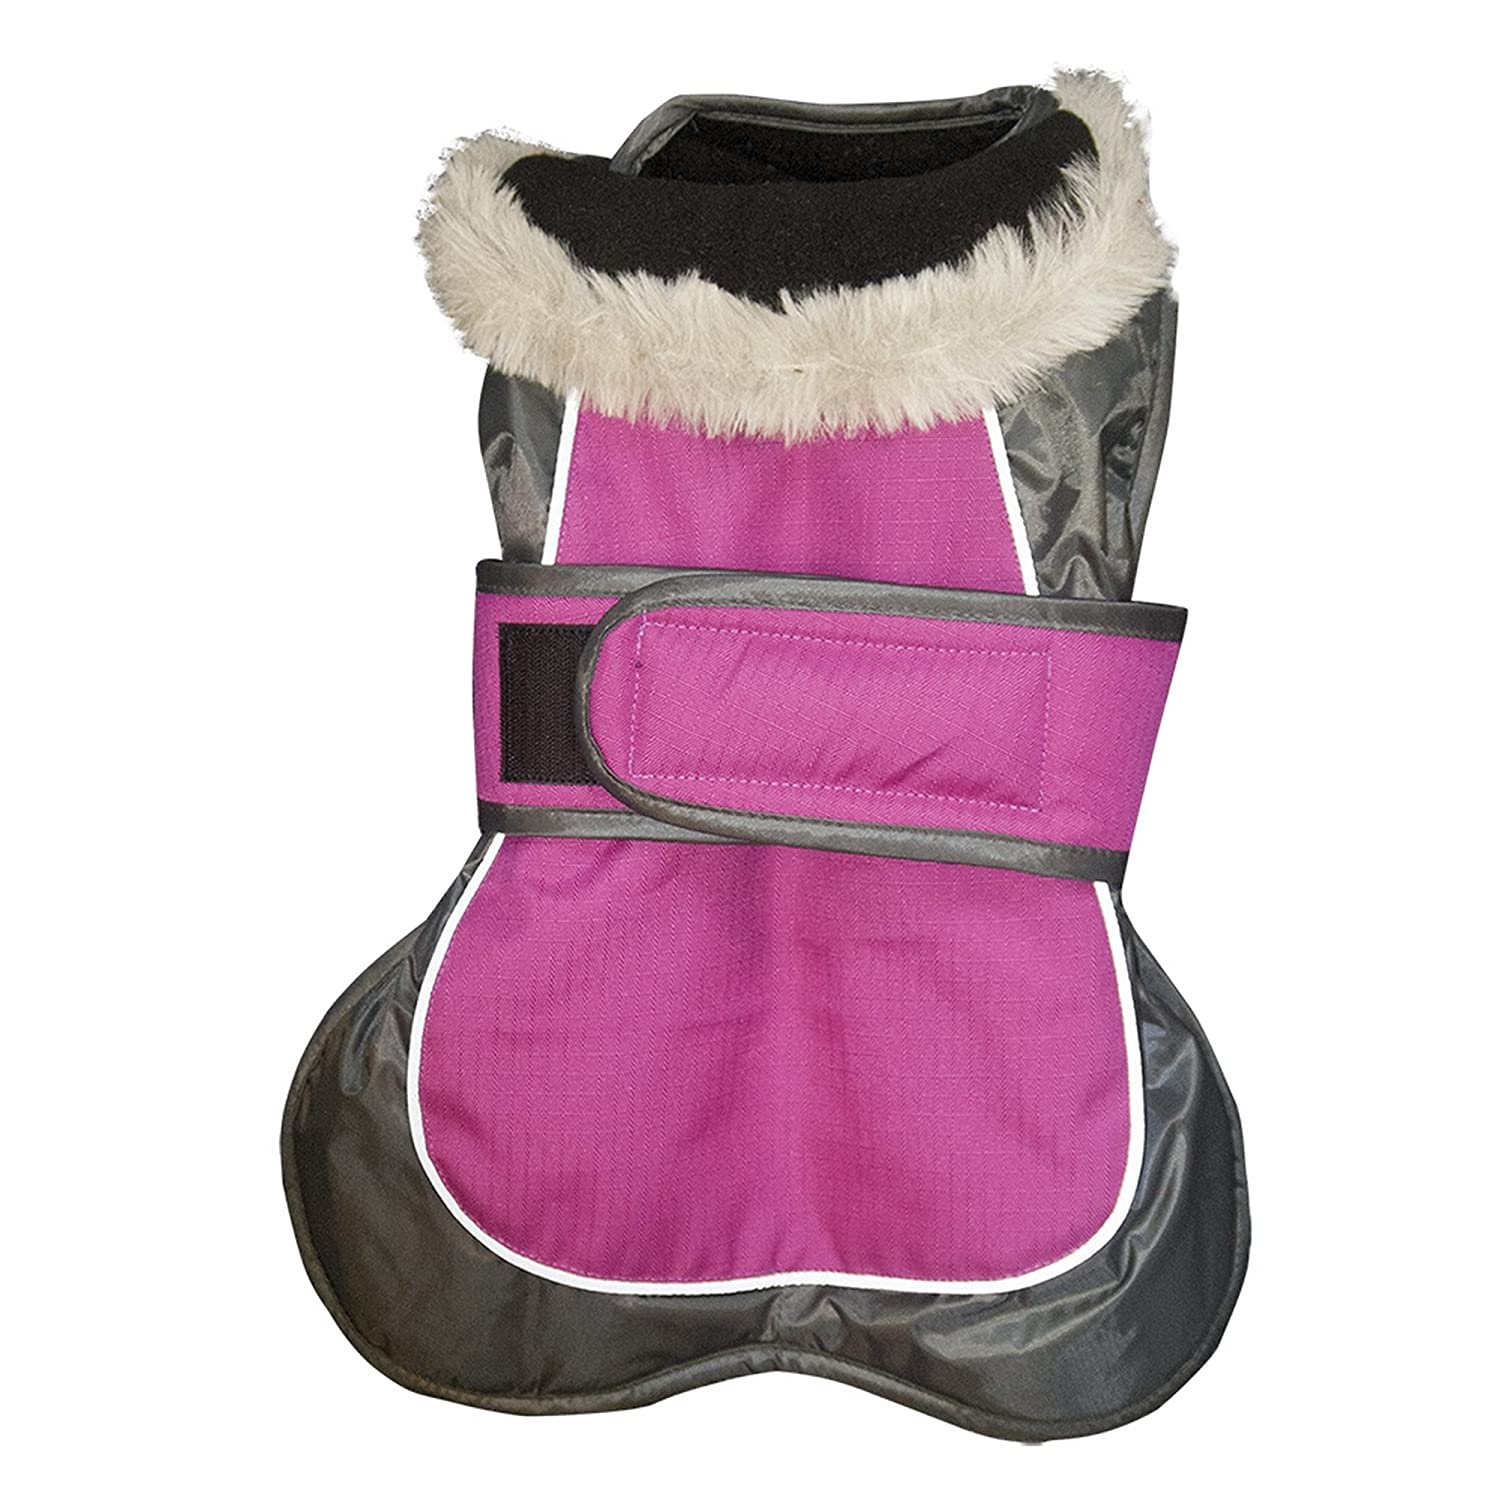 Raspberry 24in Raspberry 24in Happy Pet Products 2-in-1 Thermal Dog Coat (24in) (Raspberry)